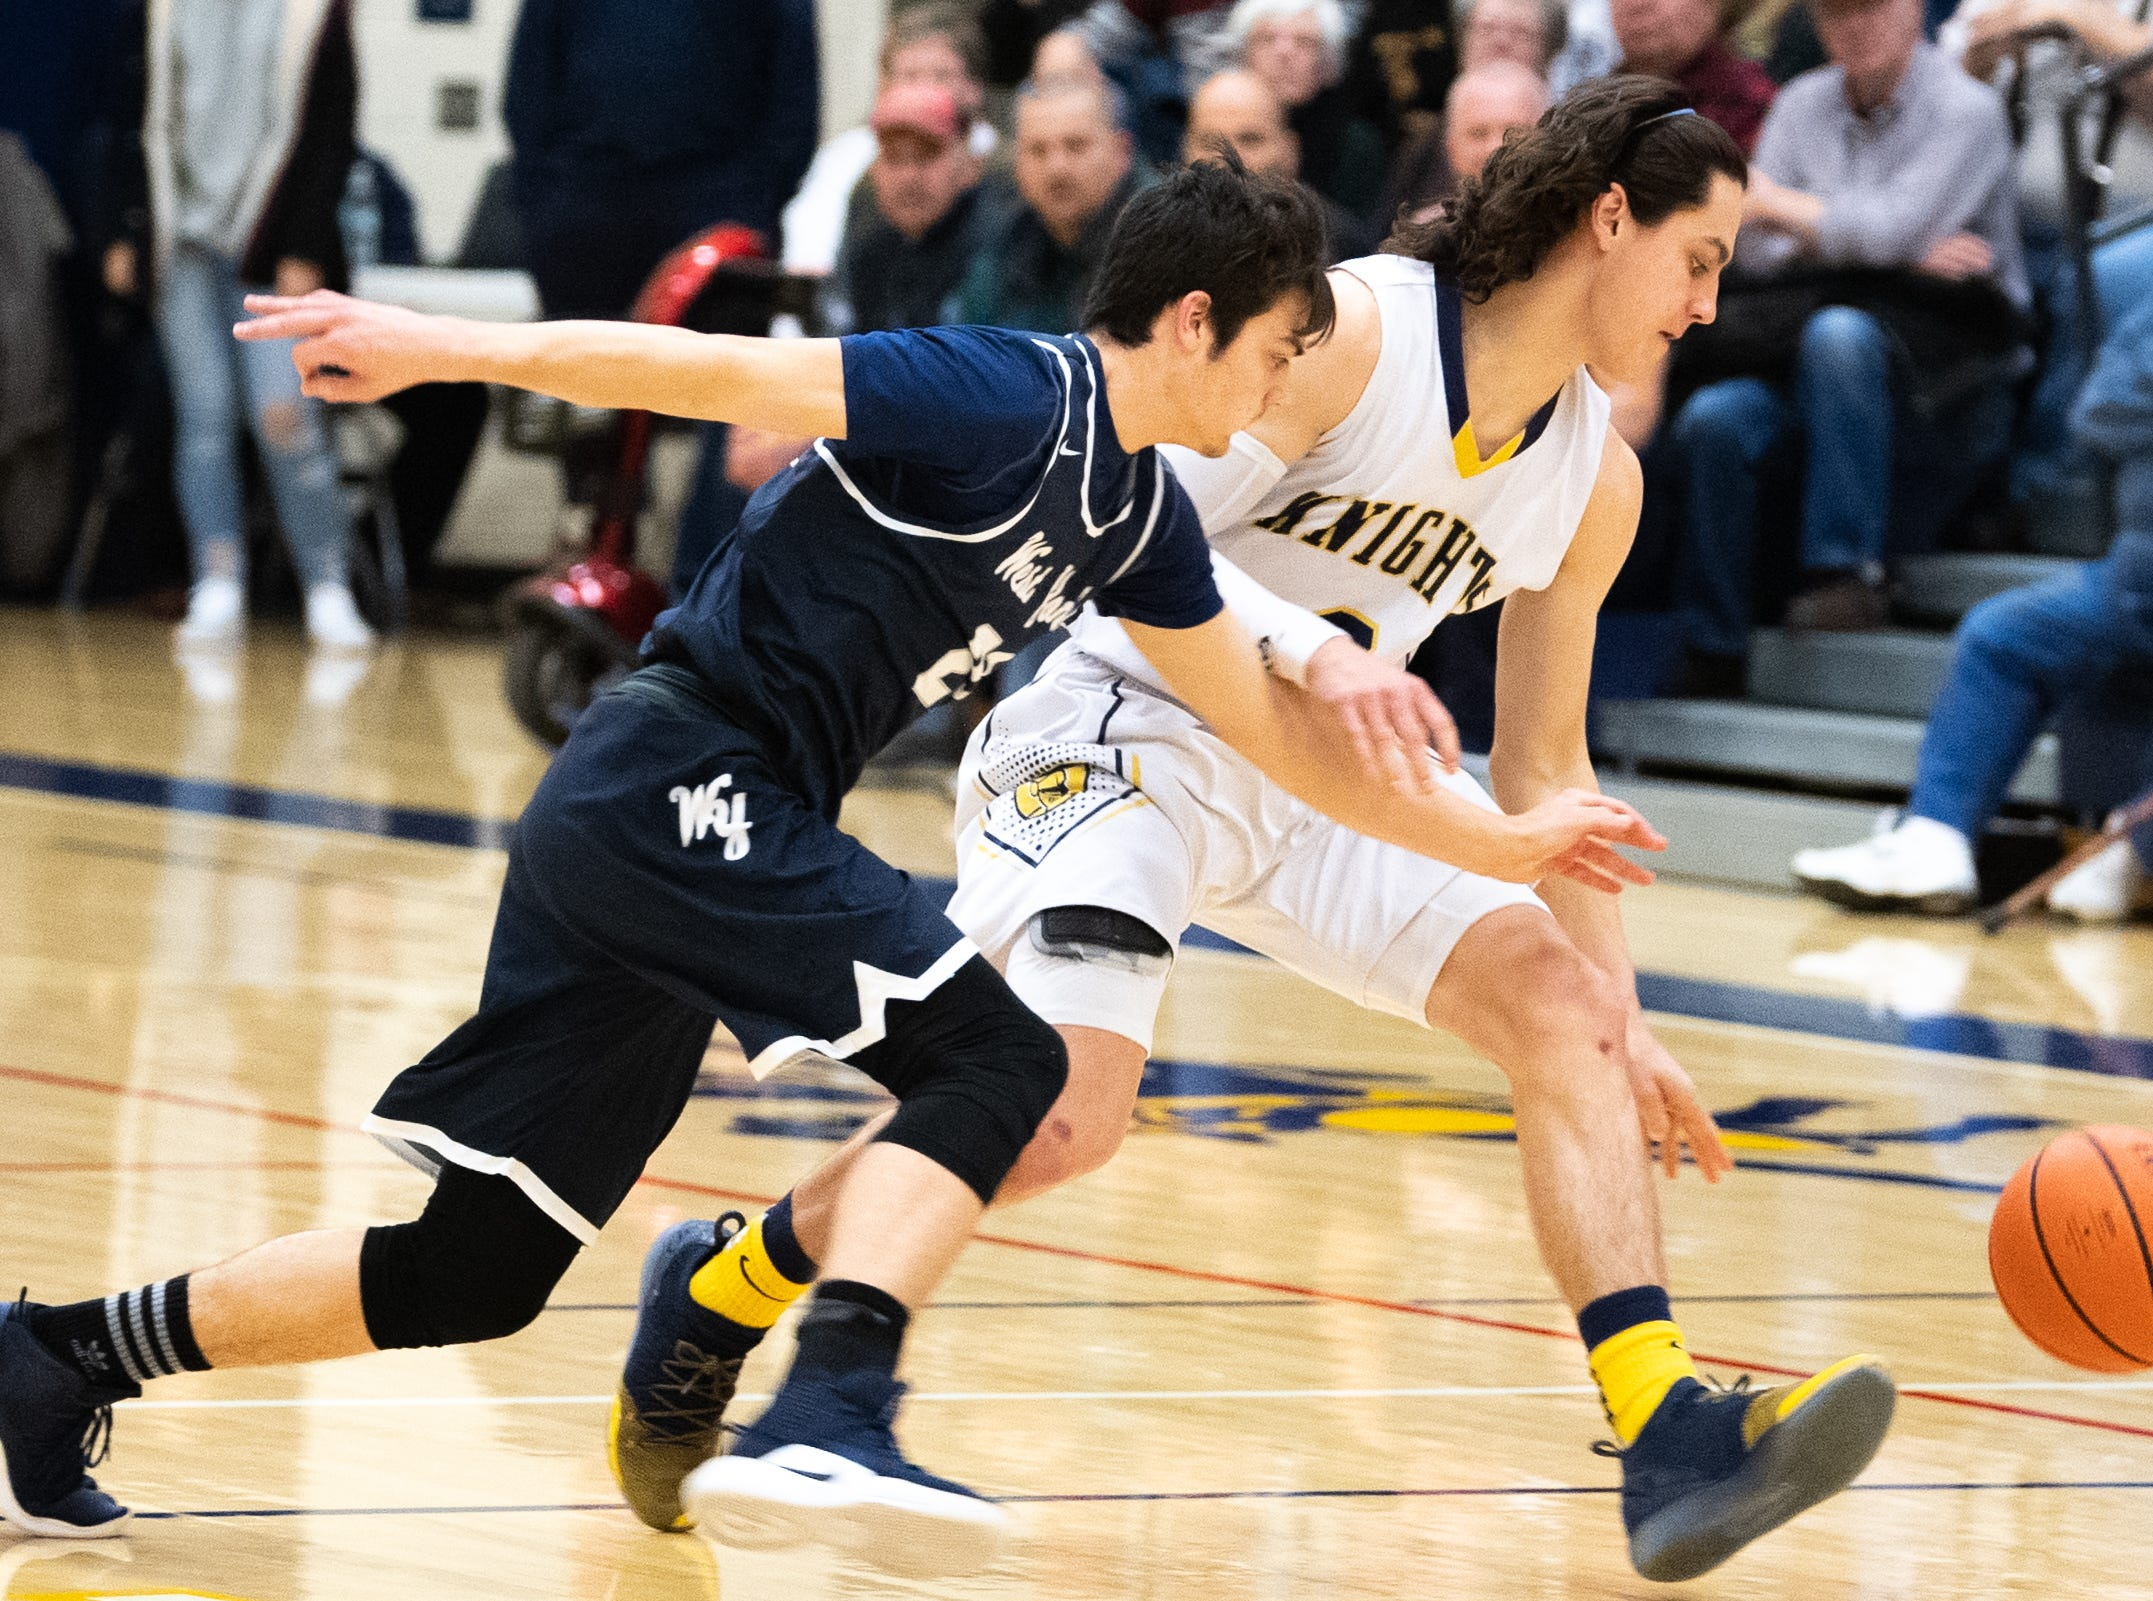 Jared Shearer (21) of West York looks to steal the ball from Eastern York's Bryce Henise (2) during the YAIAA boys' basketball game, Friday, January 25, 2019. The Golden Knights defeated the Bulldogs 59 to 55.